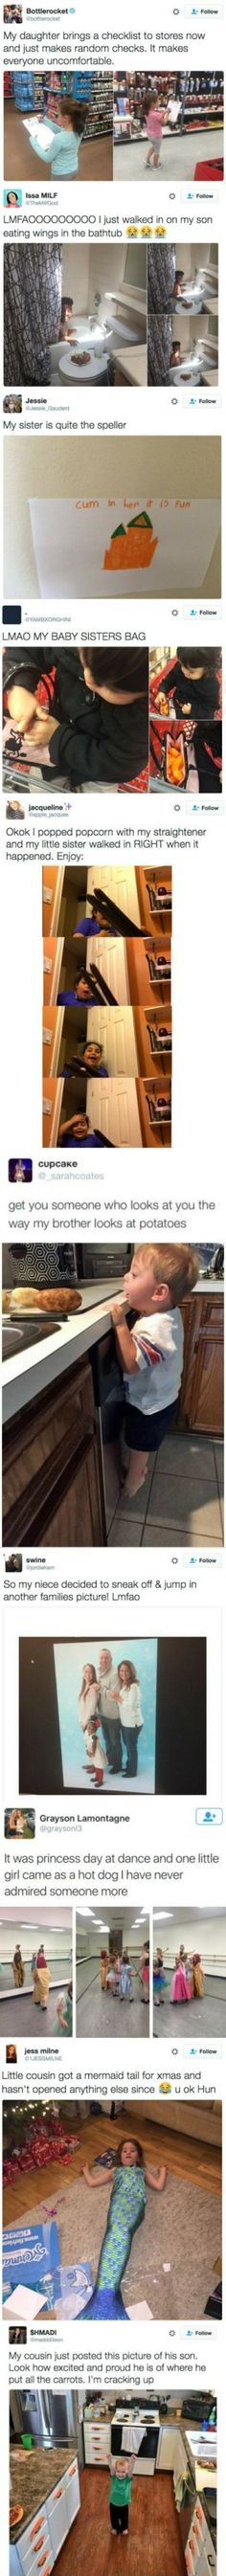 funny Texts, funny Tumblr, funny Fails, Funny Relationship, Funny Stuff, Funny Animals, Funny Things, Funny Messages, Funny Videos, Funny Snapchat, Funny Kids, Funny Cats, Funny Shirts, Funny Pranks, Funny Anime, Funny Dogs, Funny Wedding, Funny Valentine #funnydogs #dogquoteslove